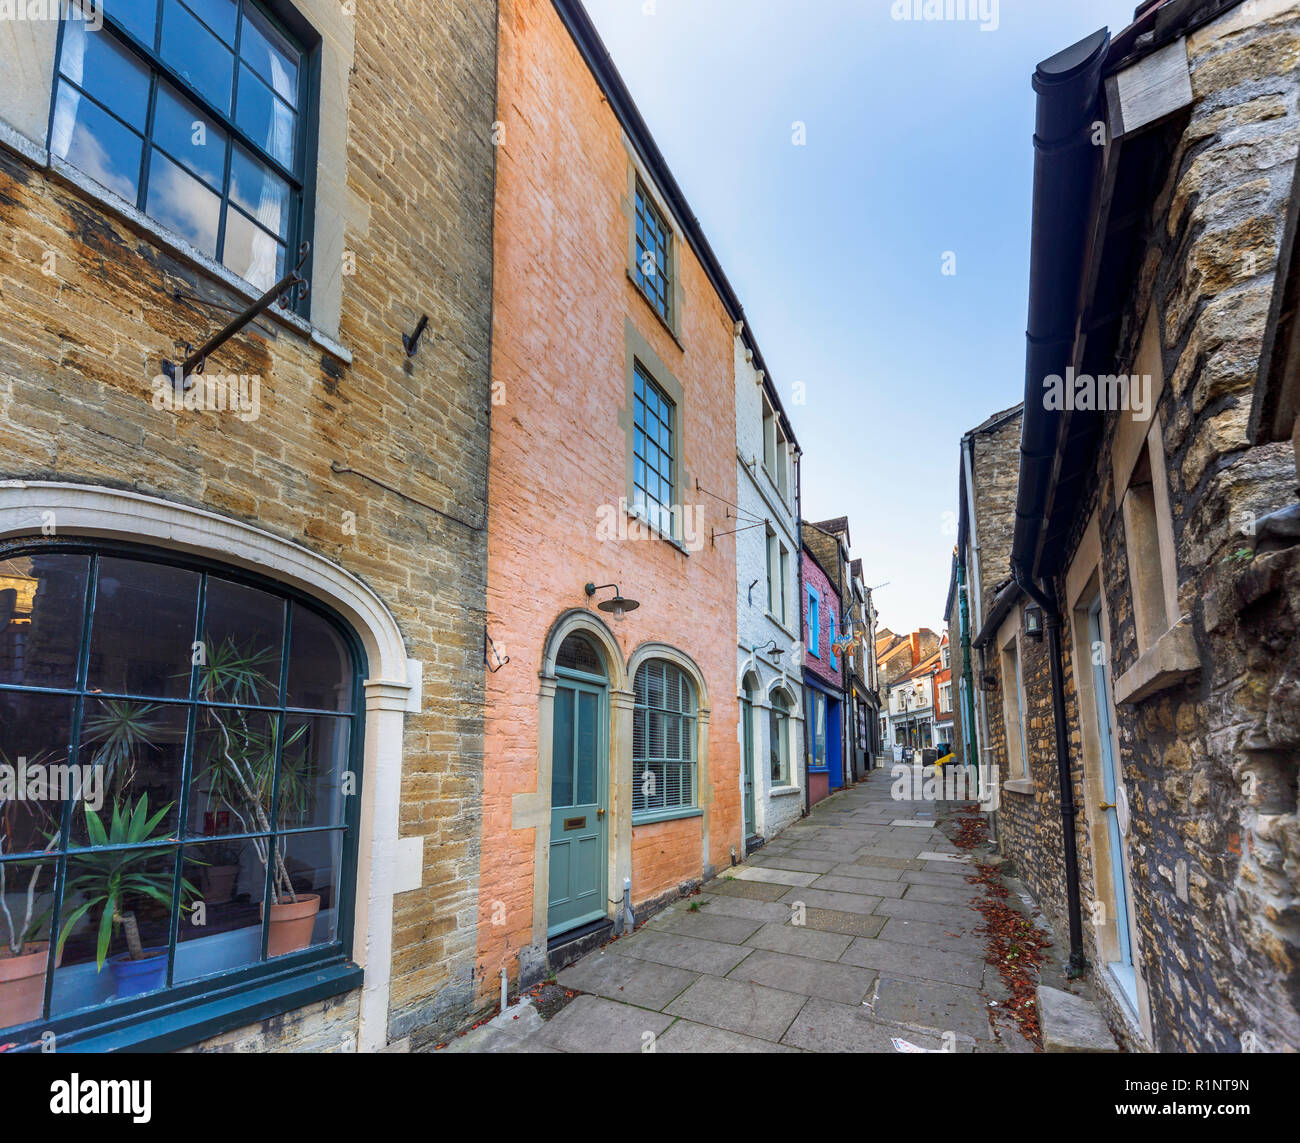 Paul Street, an alleyway off Catherine Hill with unspoilt quaint buildings and shops in the small eastern Somerset town of Frome, south-west England Stock Photo